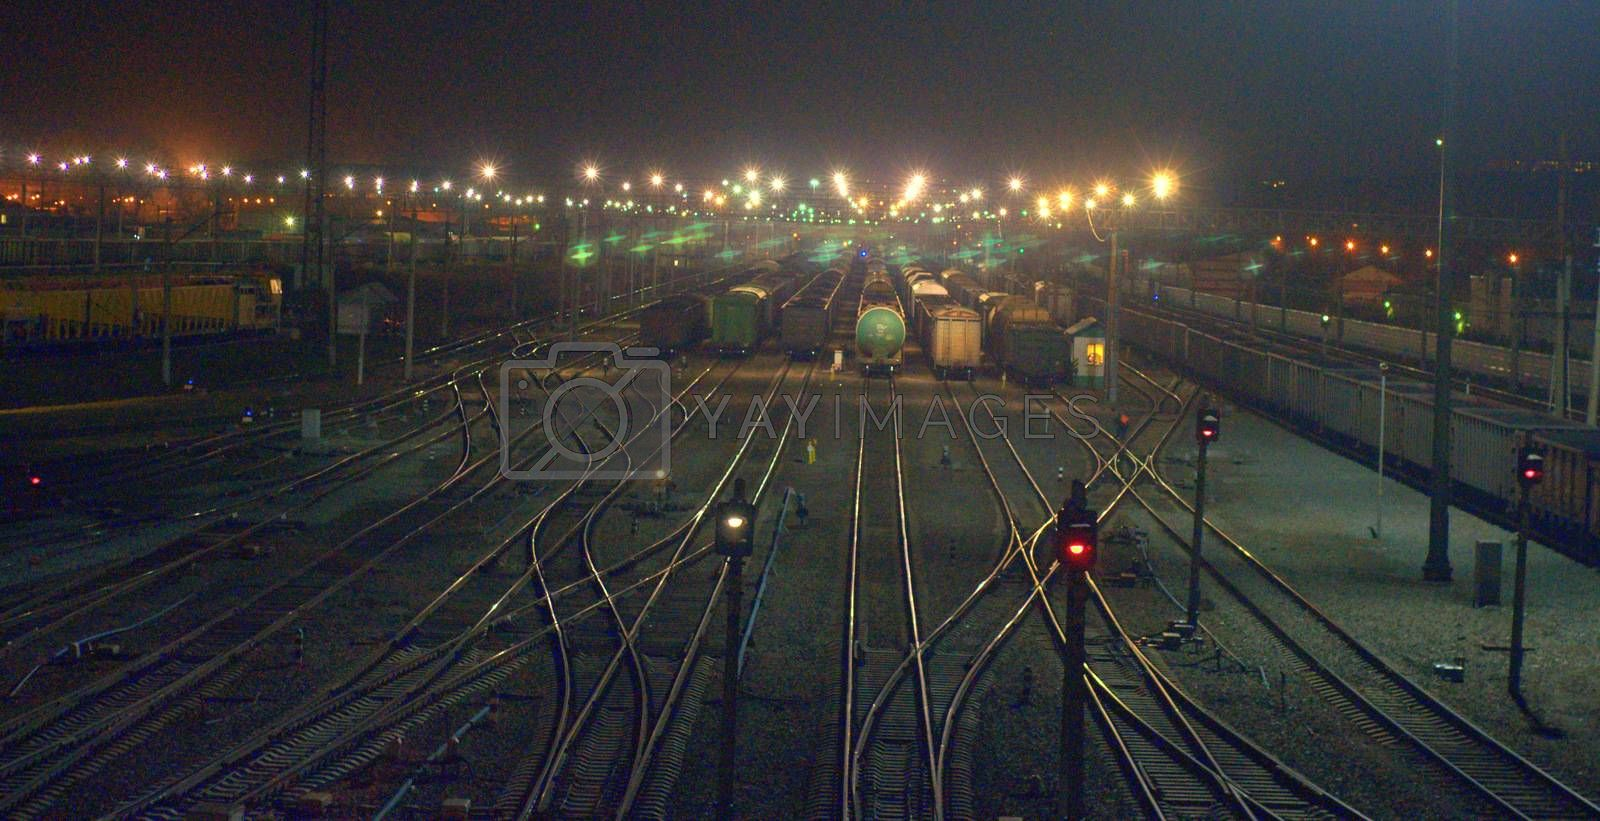 Night shooting of the crossing on the railway tracks, the bridging of the roads at the station flickers in the lights. Blur.